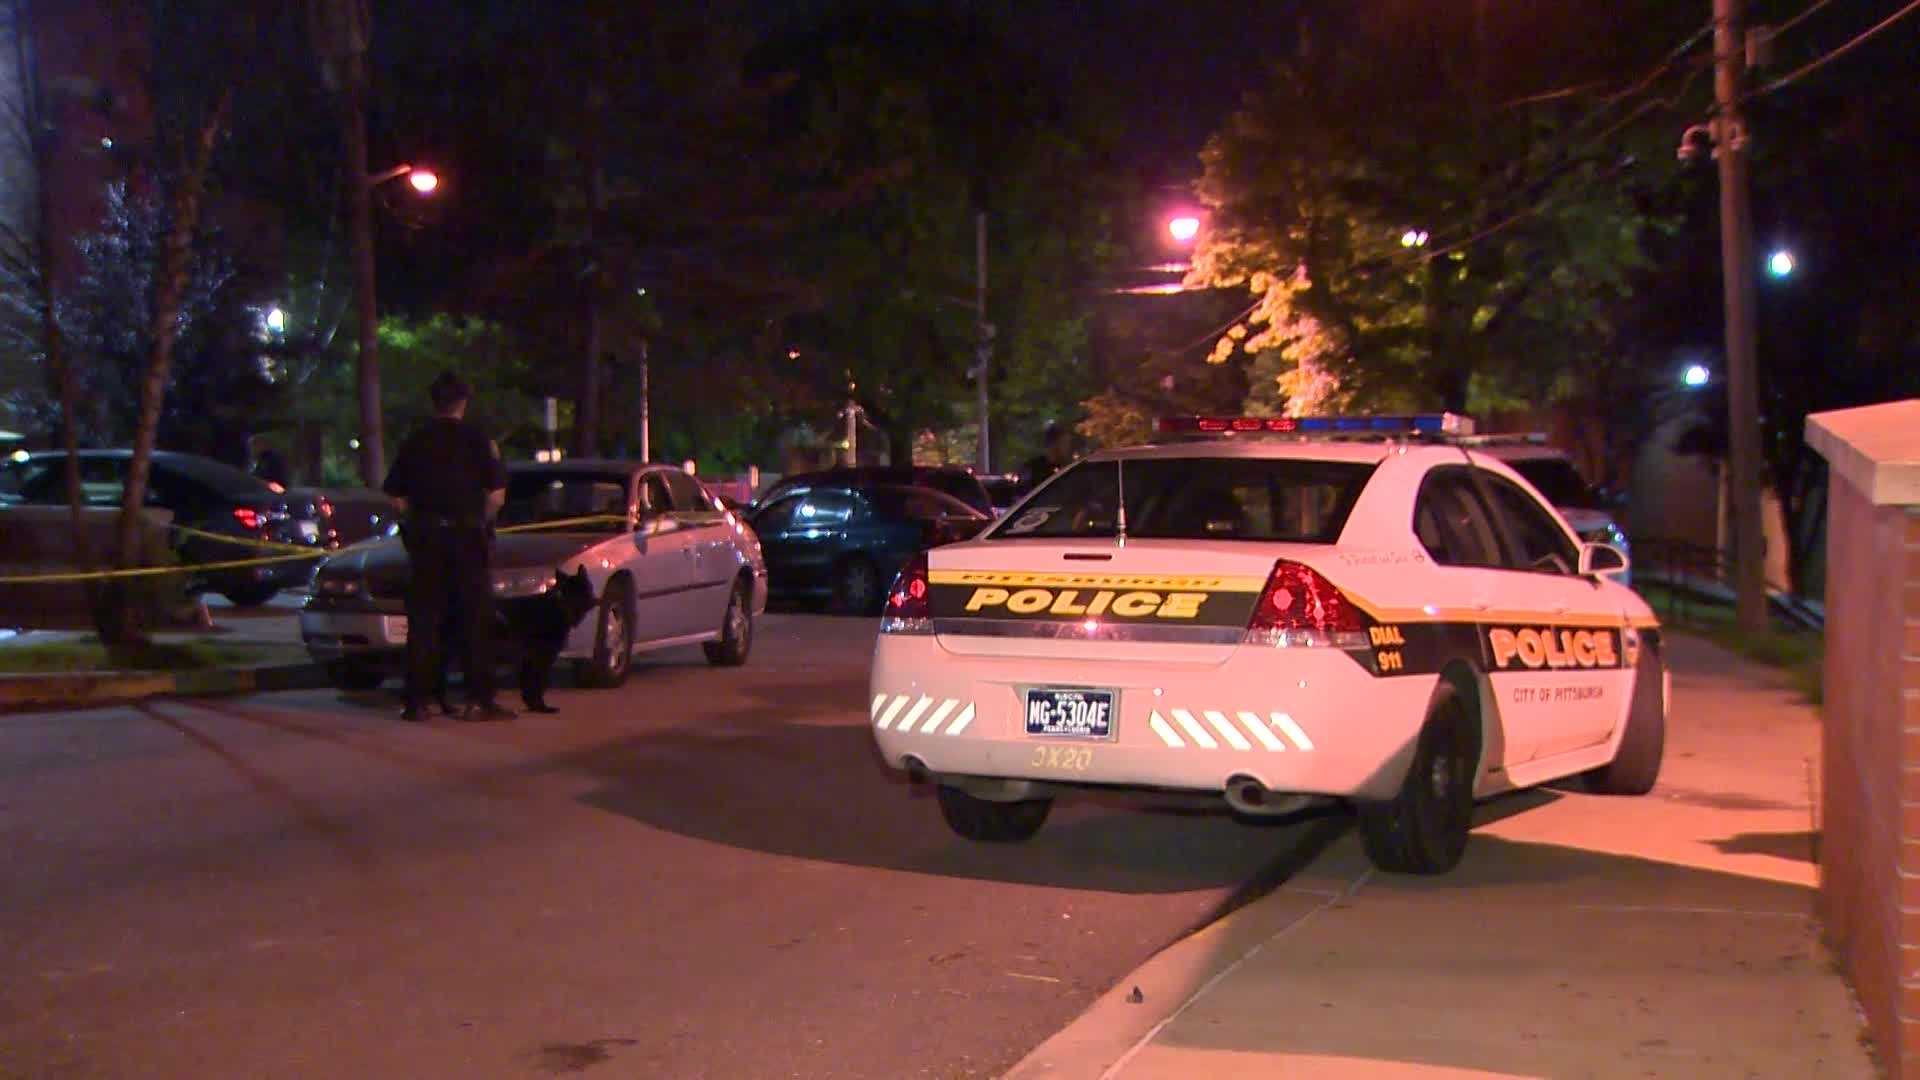 Pittsburgh police say gunfire wounded two men and a woman in a parking lot at Allegheny Dwellings.